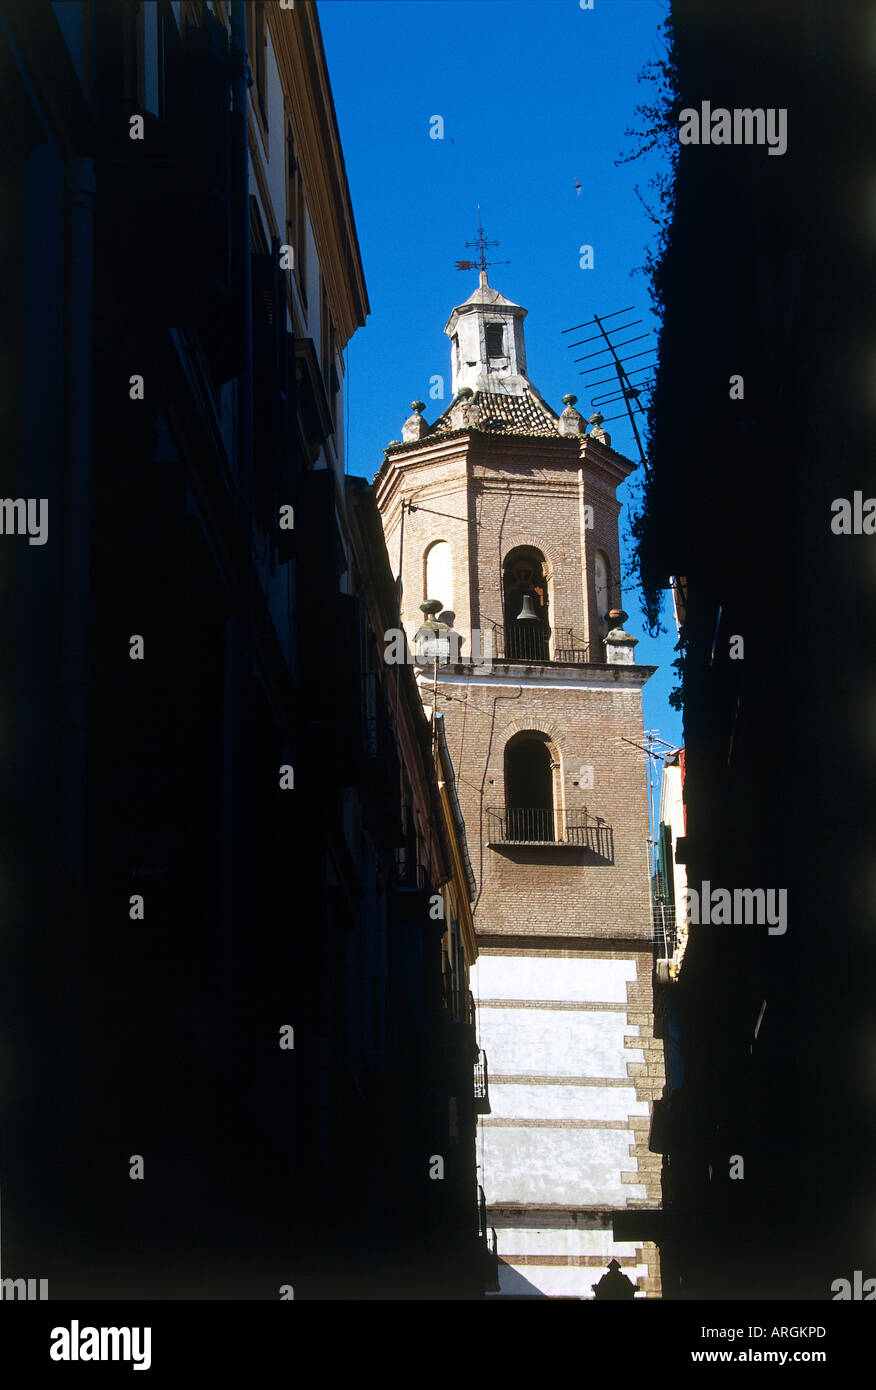 Seen from a sun shaded narrow street the Iglesia de Los Martires translates as the Church of the Martyrs - Stock Image